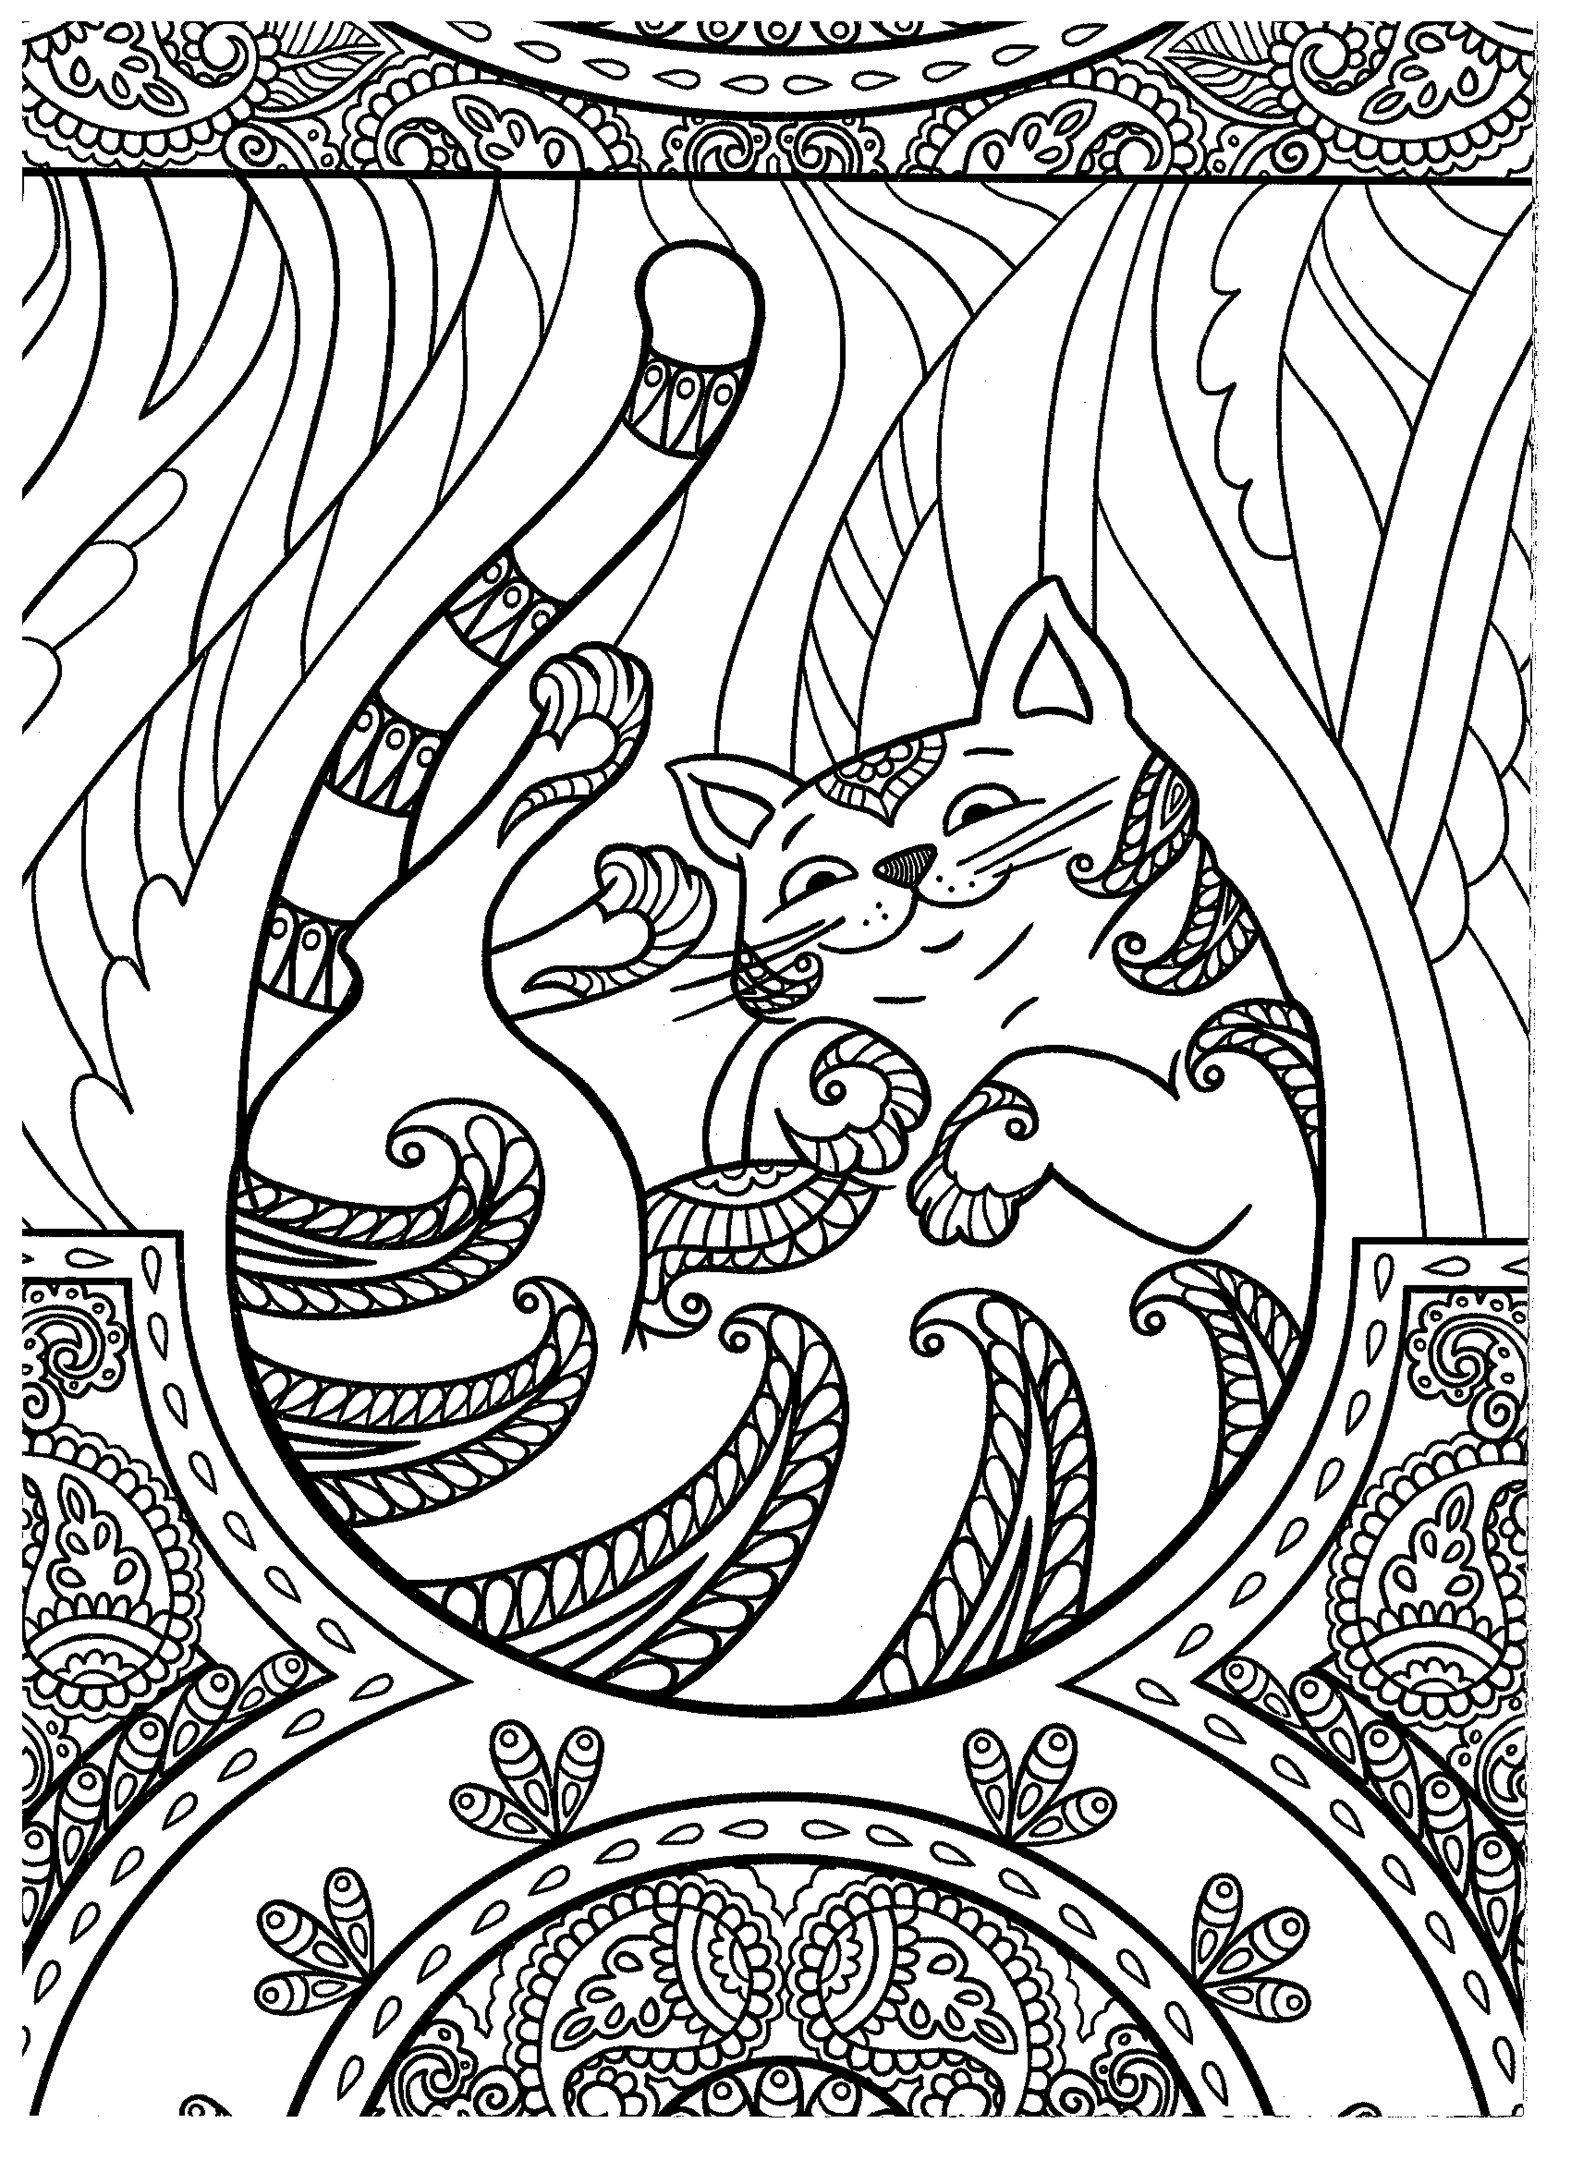 Best ideas about Cats Adult Coloring Books . Save or Pin Cat coloring page Kids coloring pages books Now.